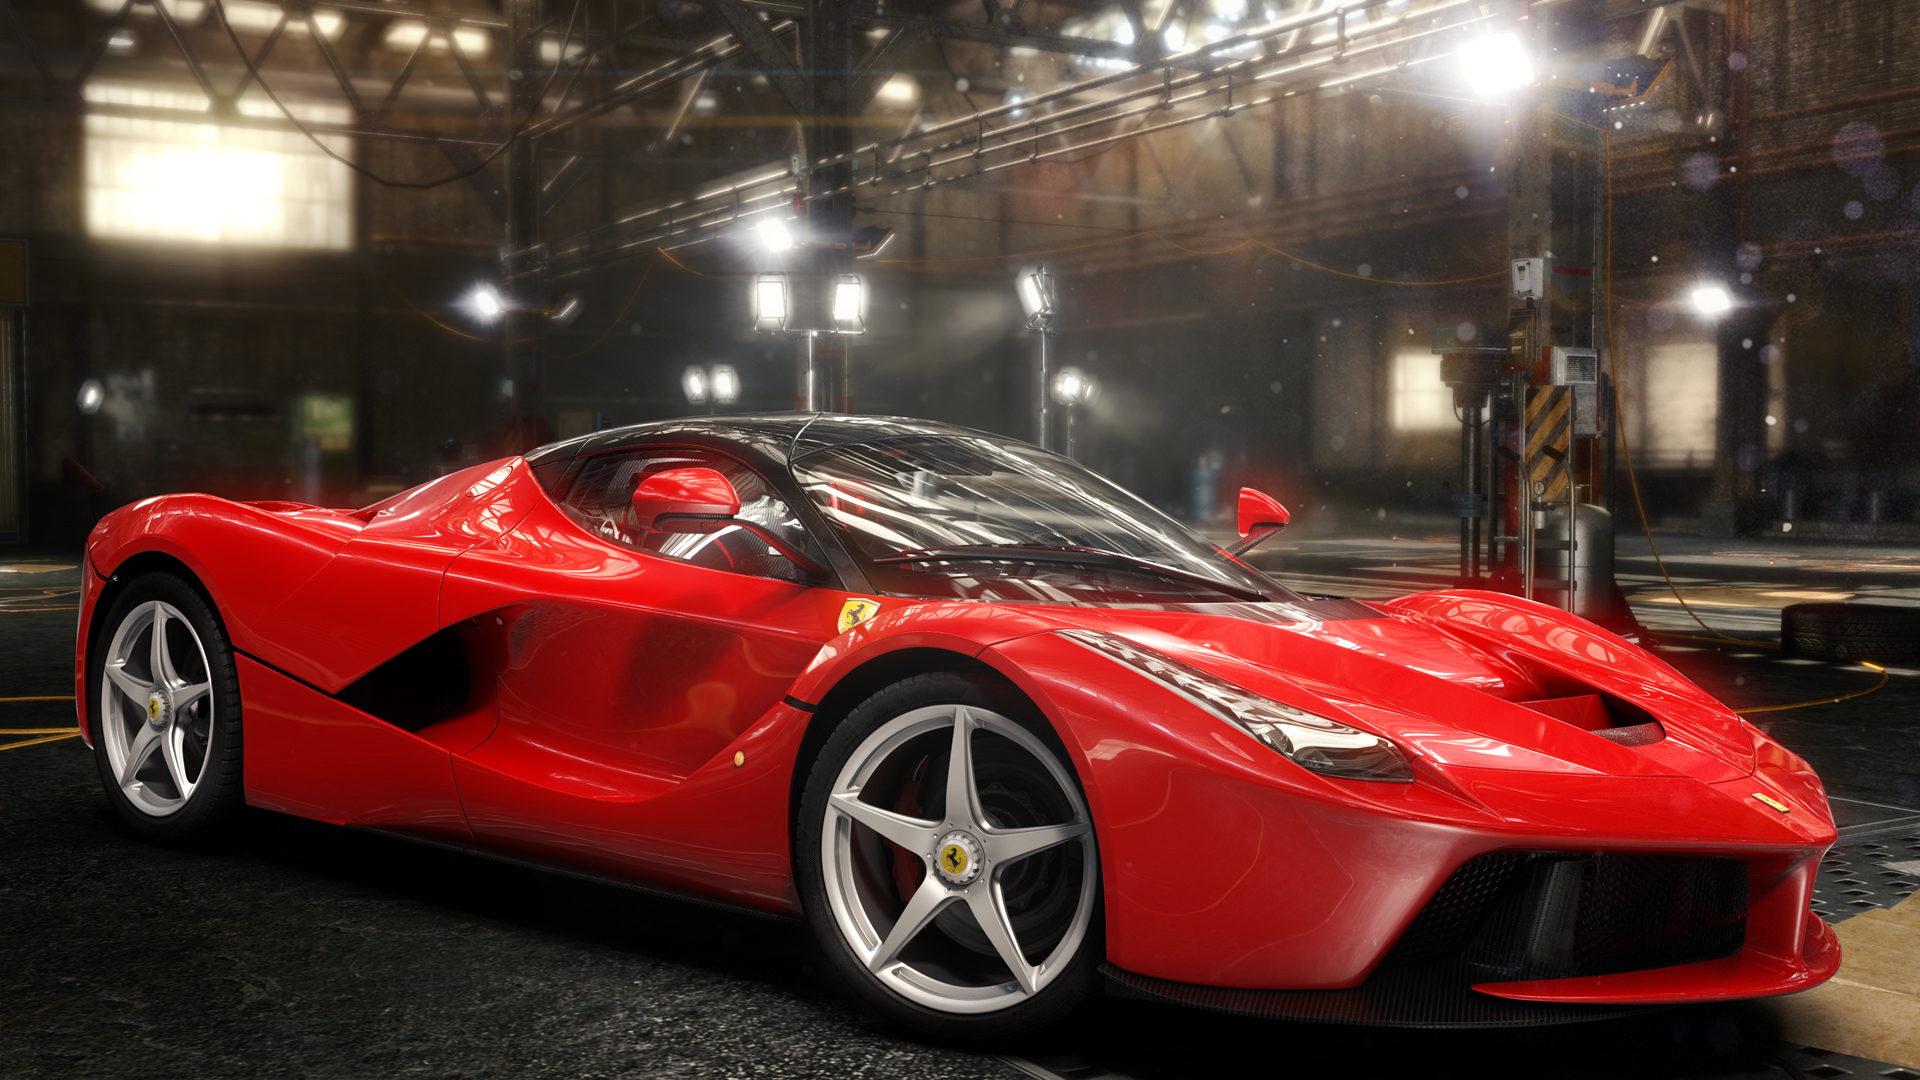 FERRARI_LAFERRARI_full_big.jpg